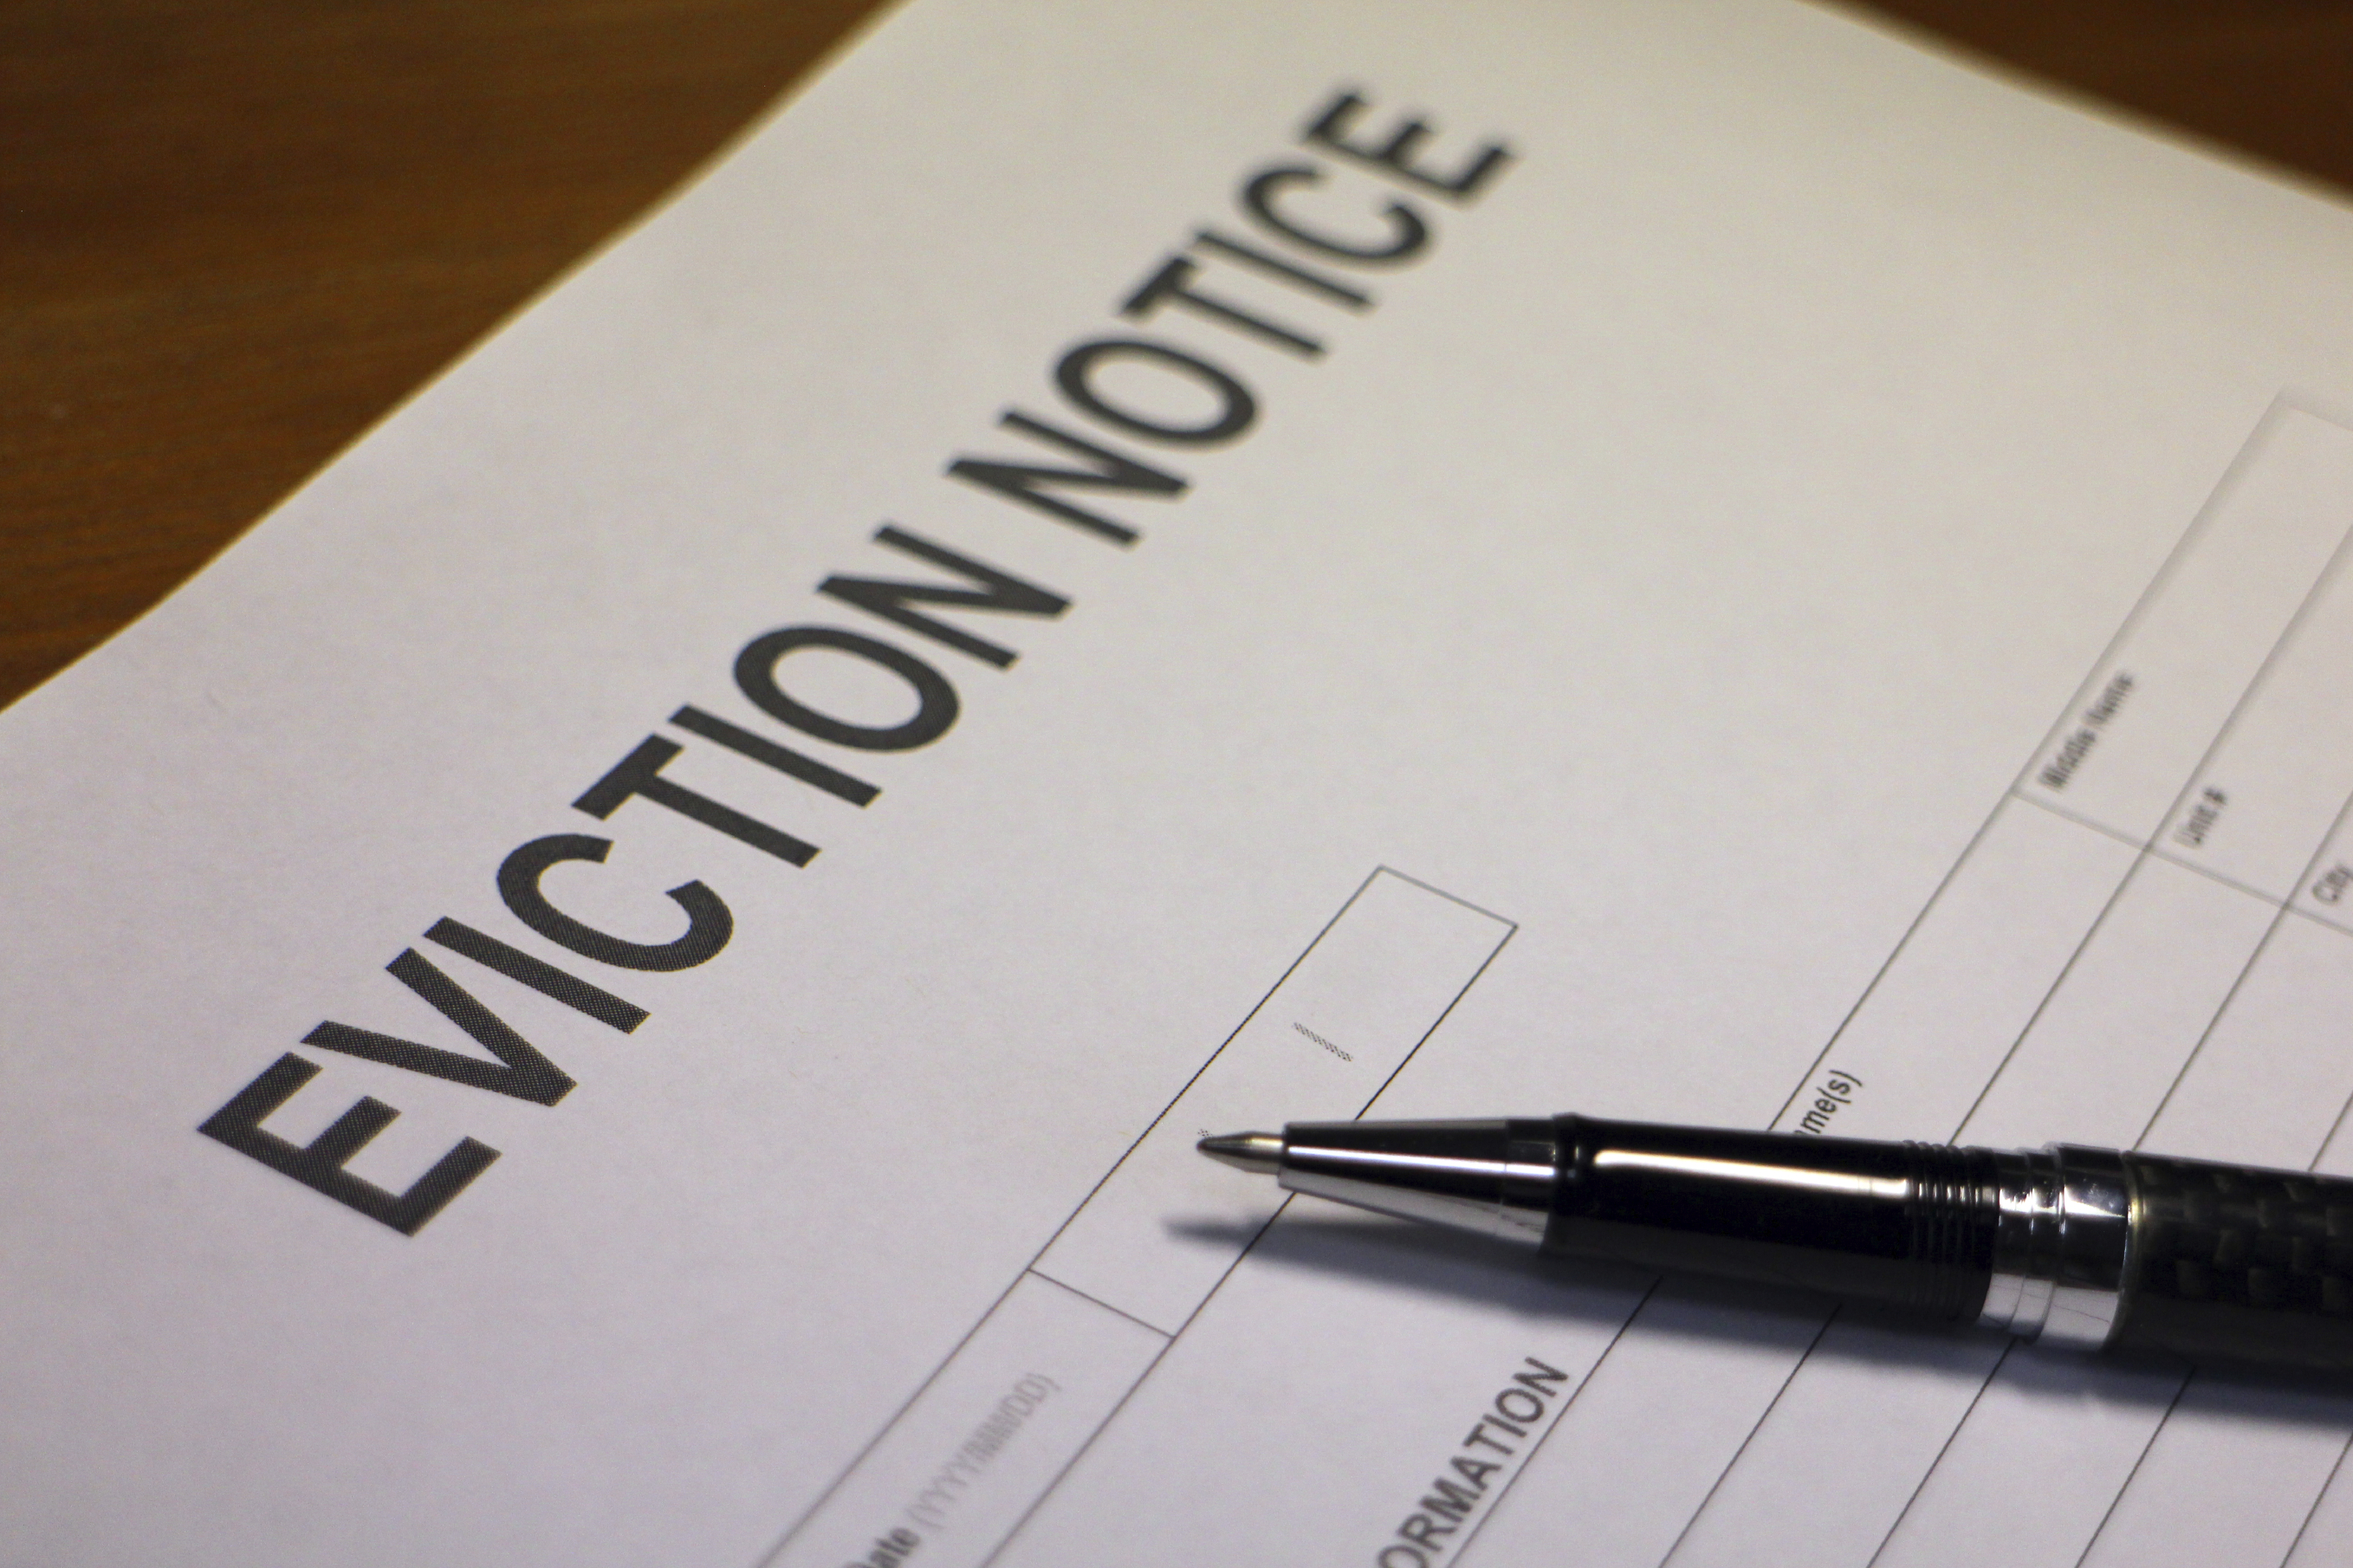 Rental sector evictions Central Housing Group